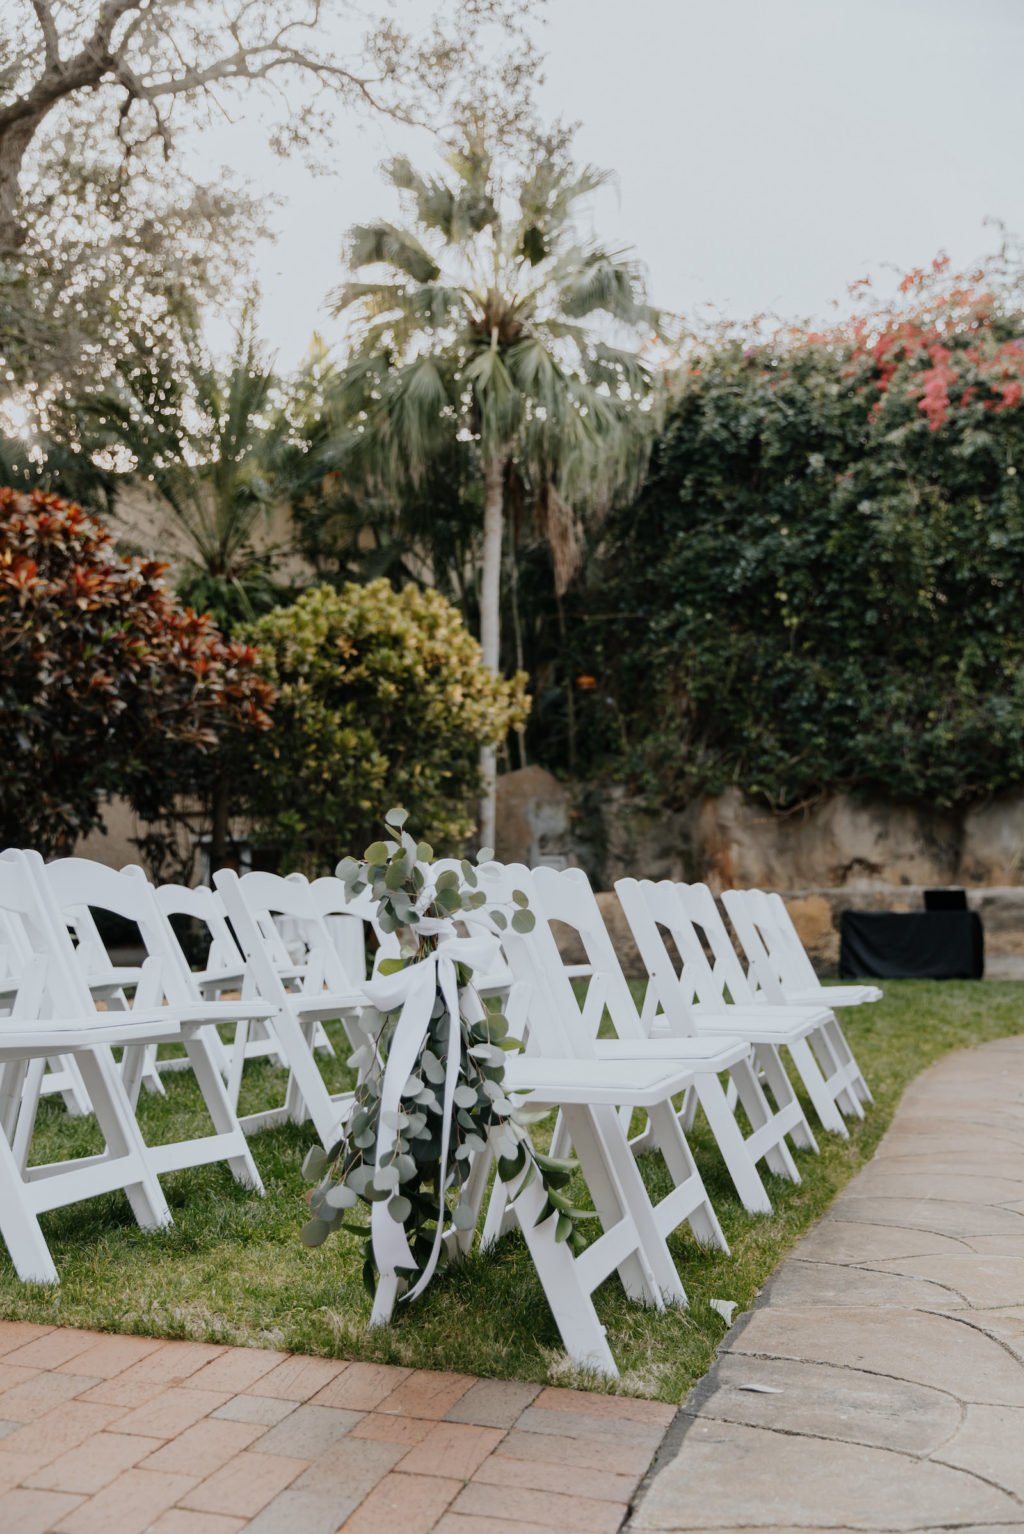 Downtown St. Petersburg Outdoor Wedding Ceremony with White Floral Bouquets and Greenery   Sunken Gardens